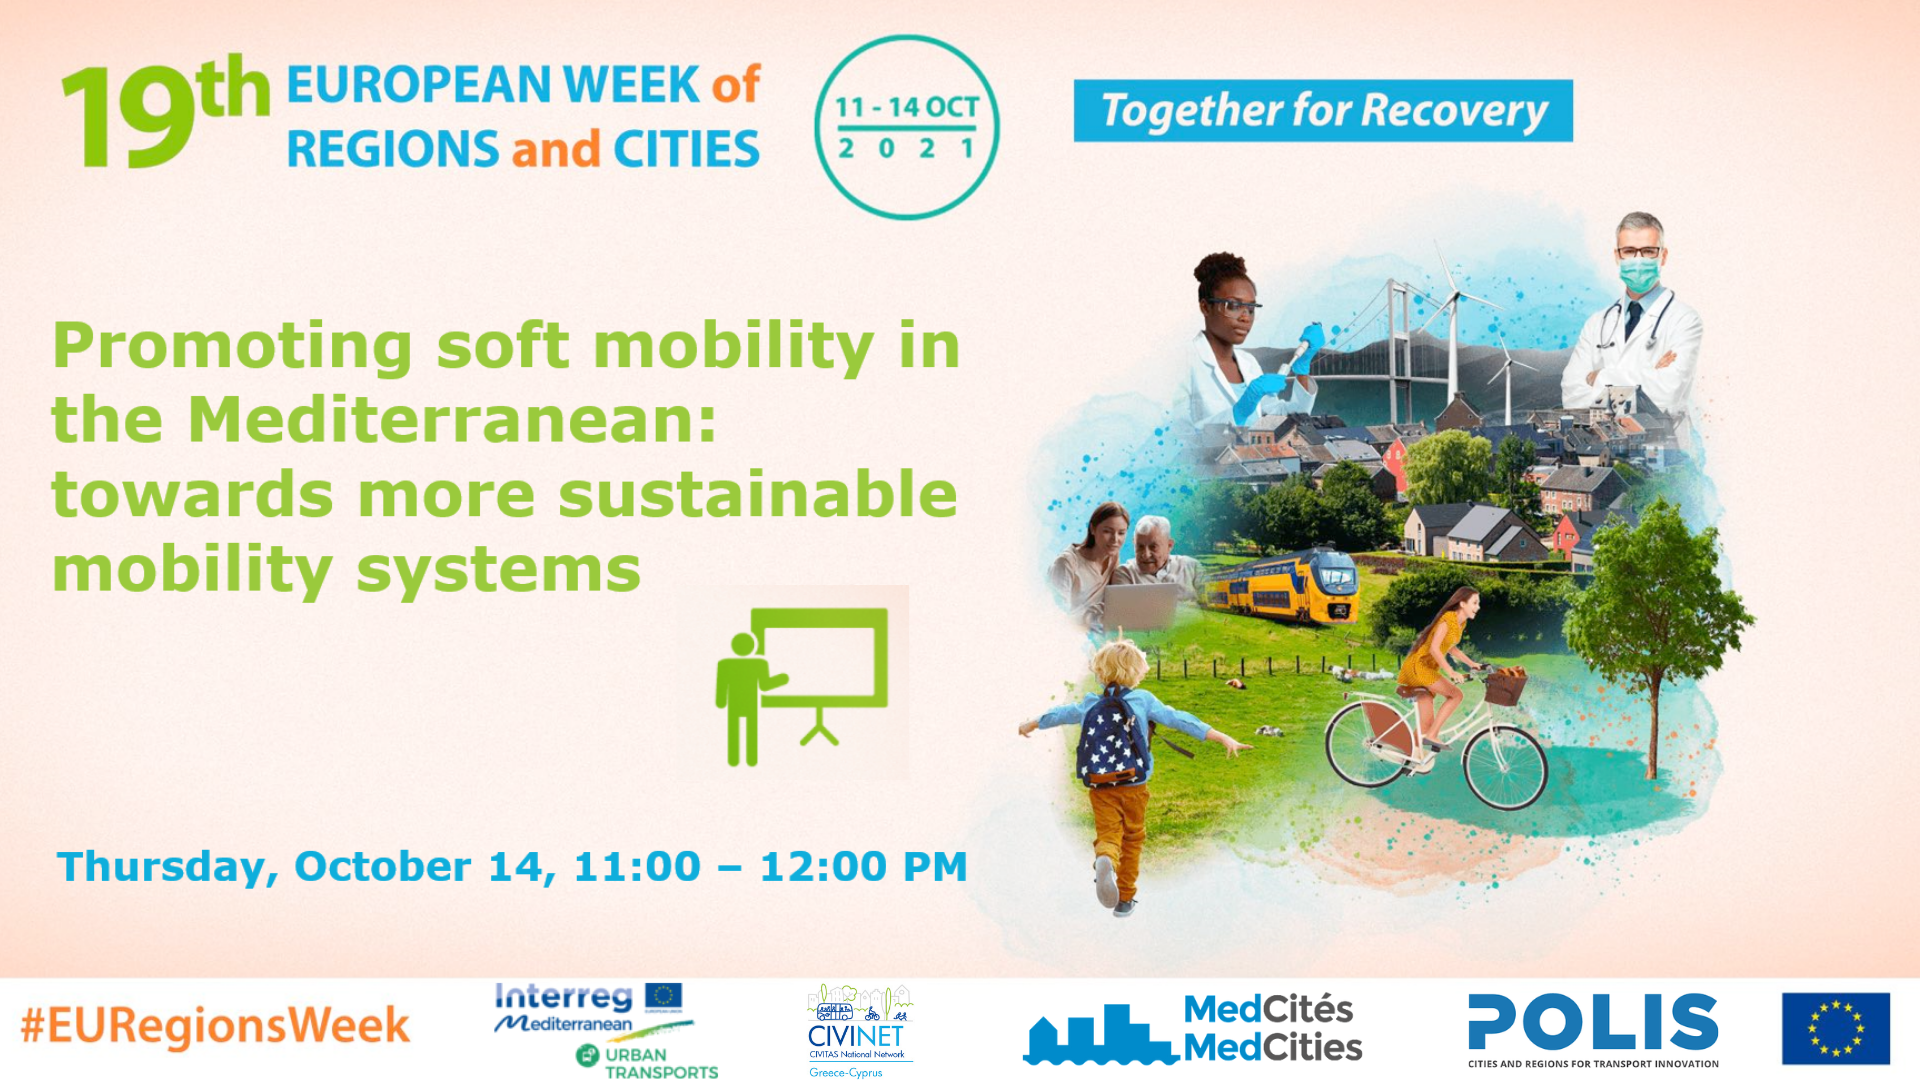 Promoting soft mobility in the Mediterranean: towards more sustainable mobility systems